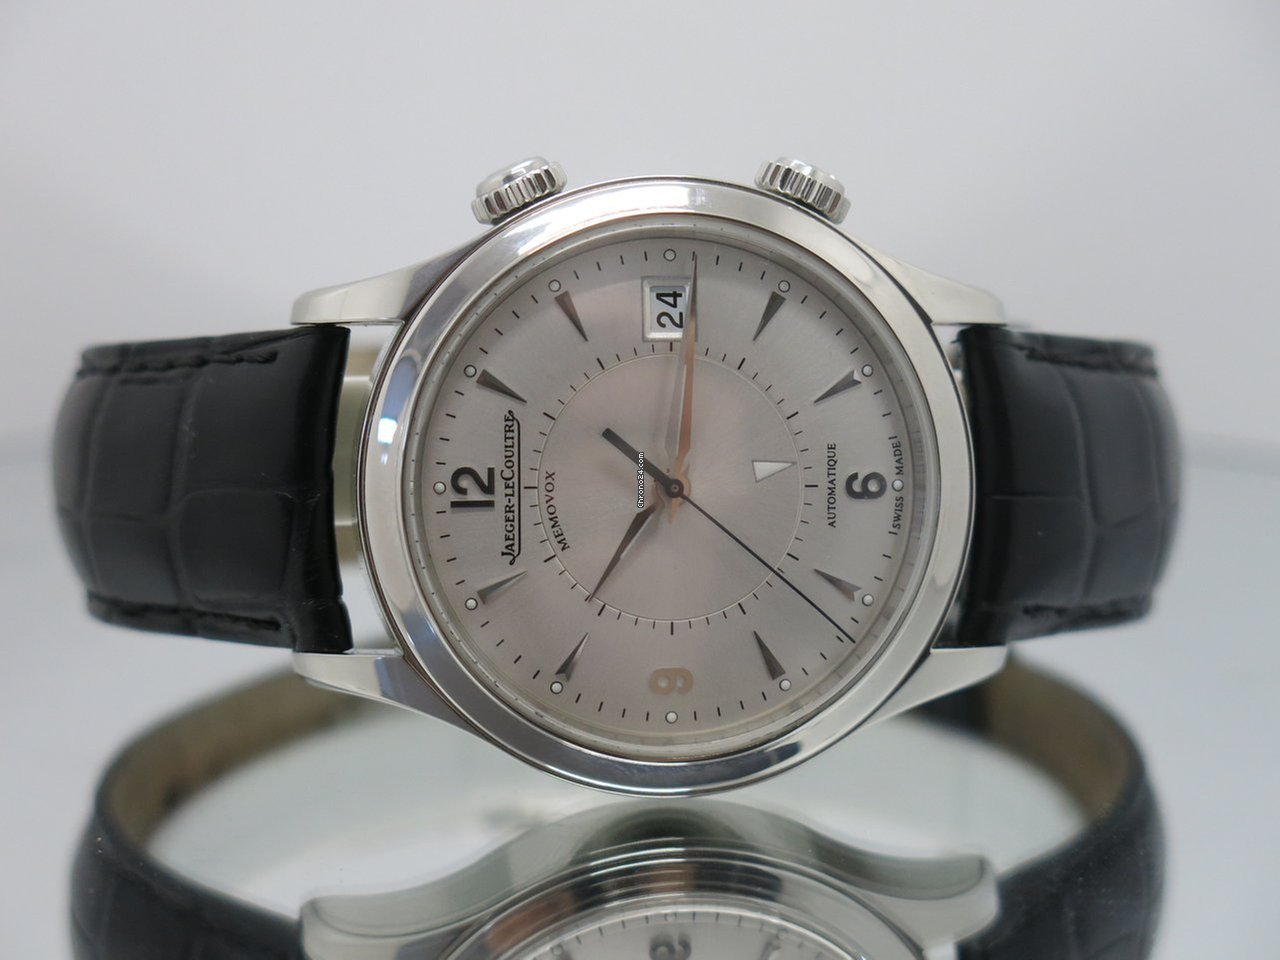 a9a1ab0a30509 Jaeger-LeCoultre watches - all prices for Jaeger-LeCoultre watches on  Chrono24